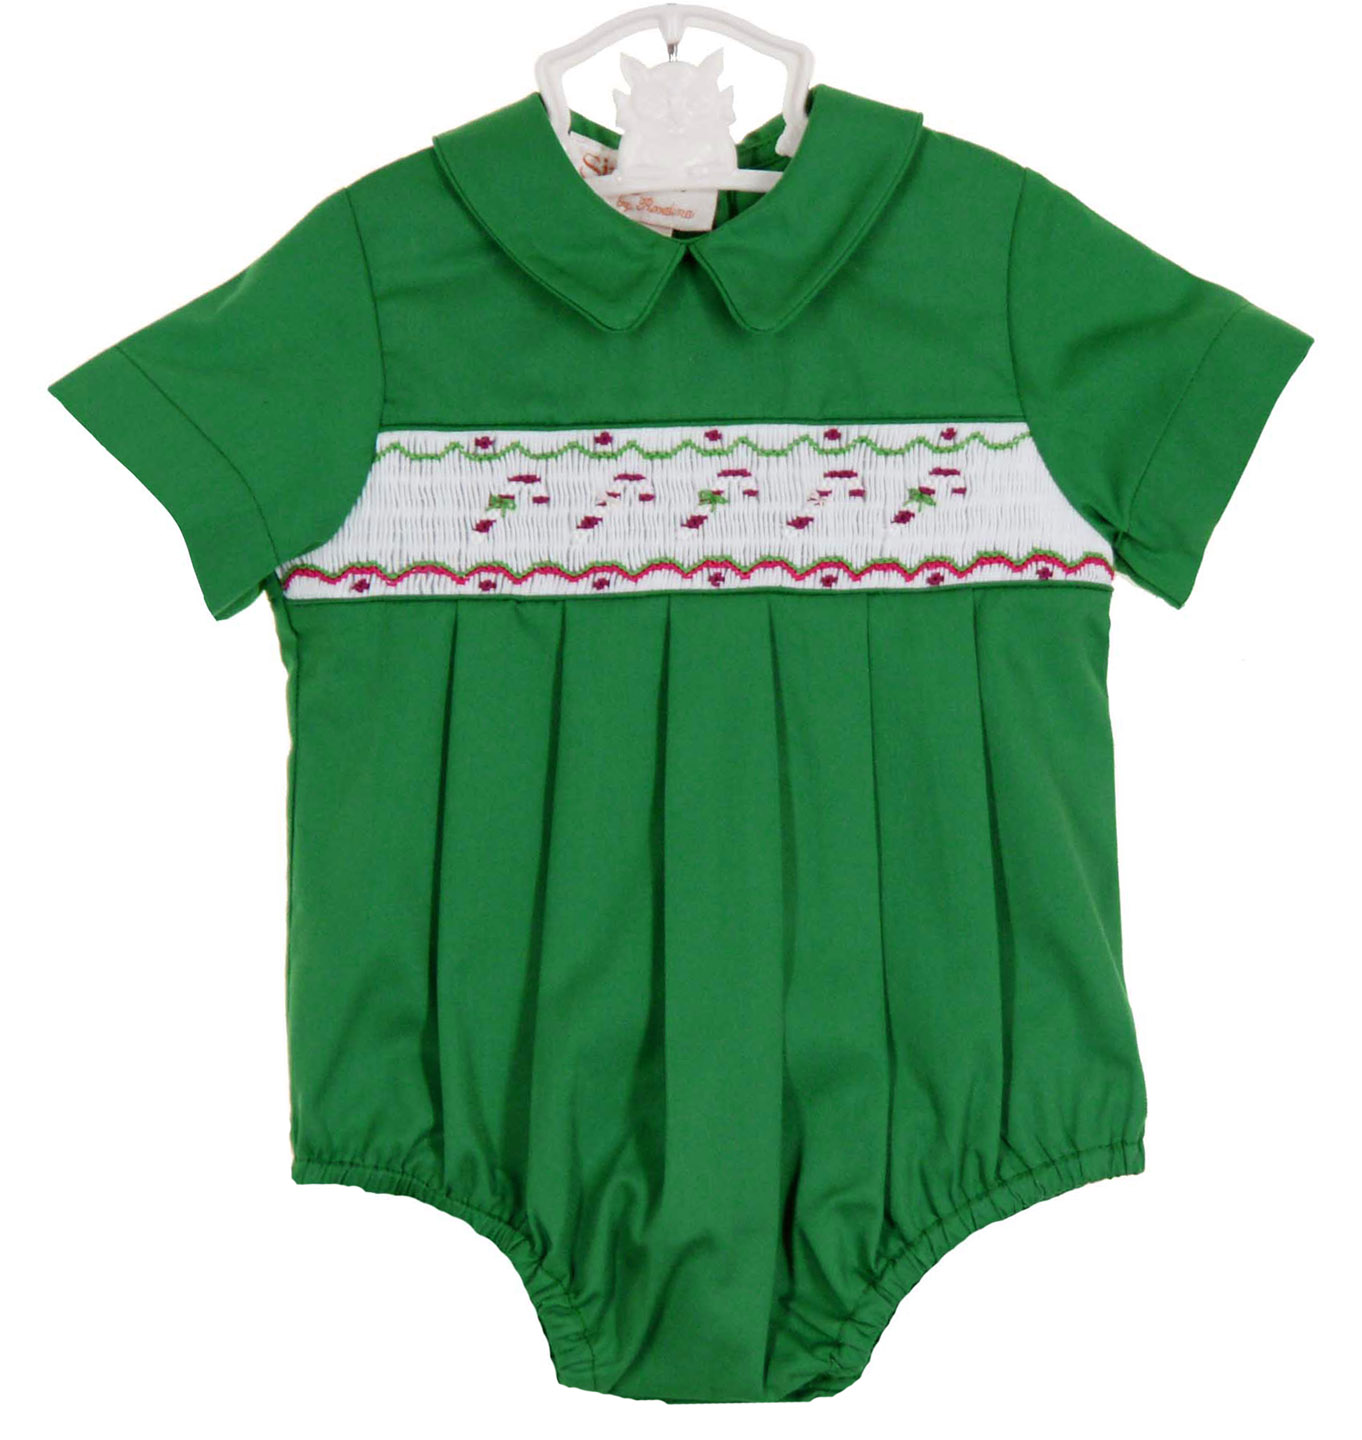 ebd00ee118a0 Rosalina green bishop smocked romper with candy cane embroidery